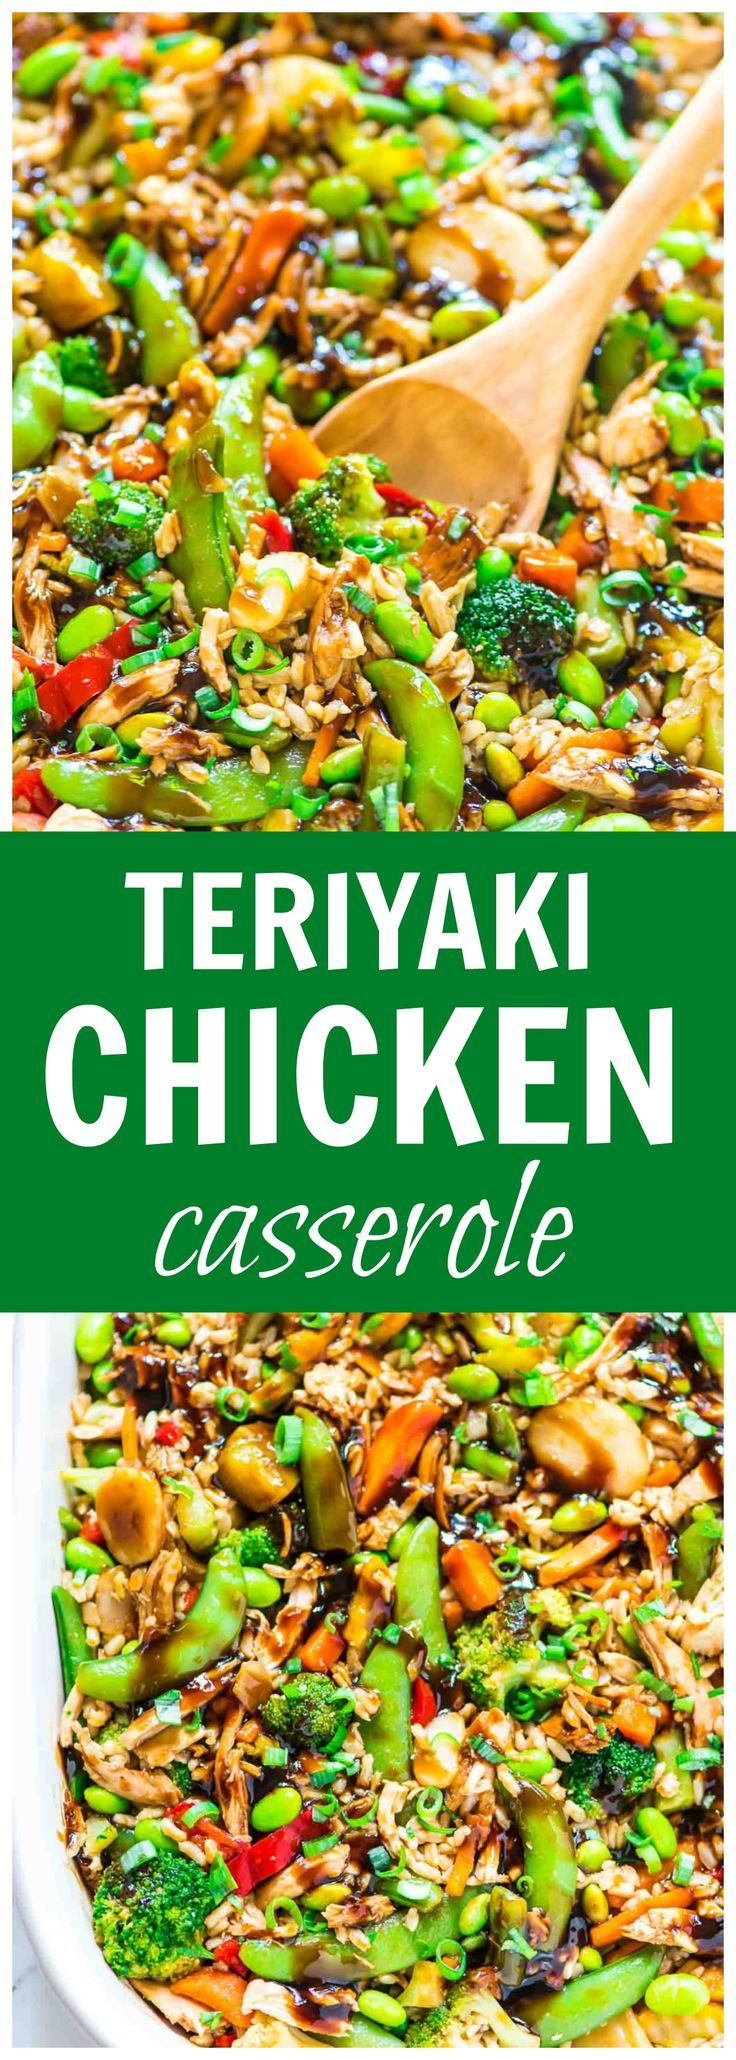 Teriyaki Chicken Casserole recipe — a DELICIOUS and EASY all-in-one meal with juicy chicken, crispy veggies, brown rice, and an addictive sticky teriyaki sauce. Great recipe for busy weeknights! Recipe at wellplated.com @Well Plated